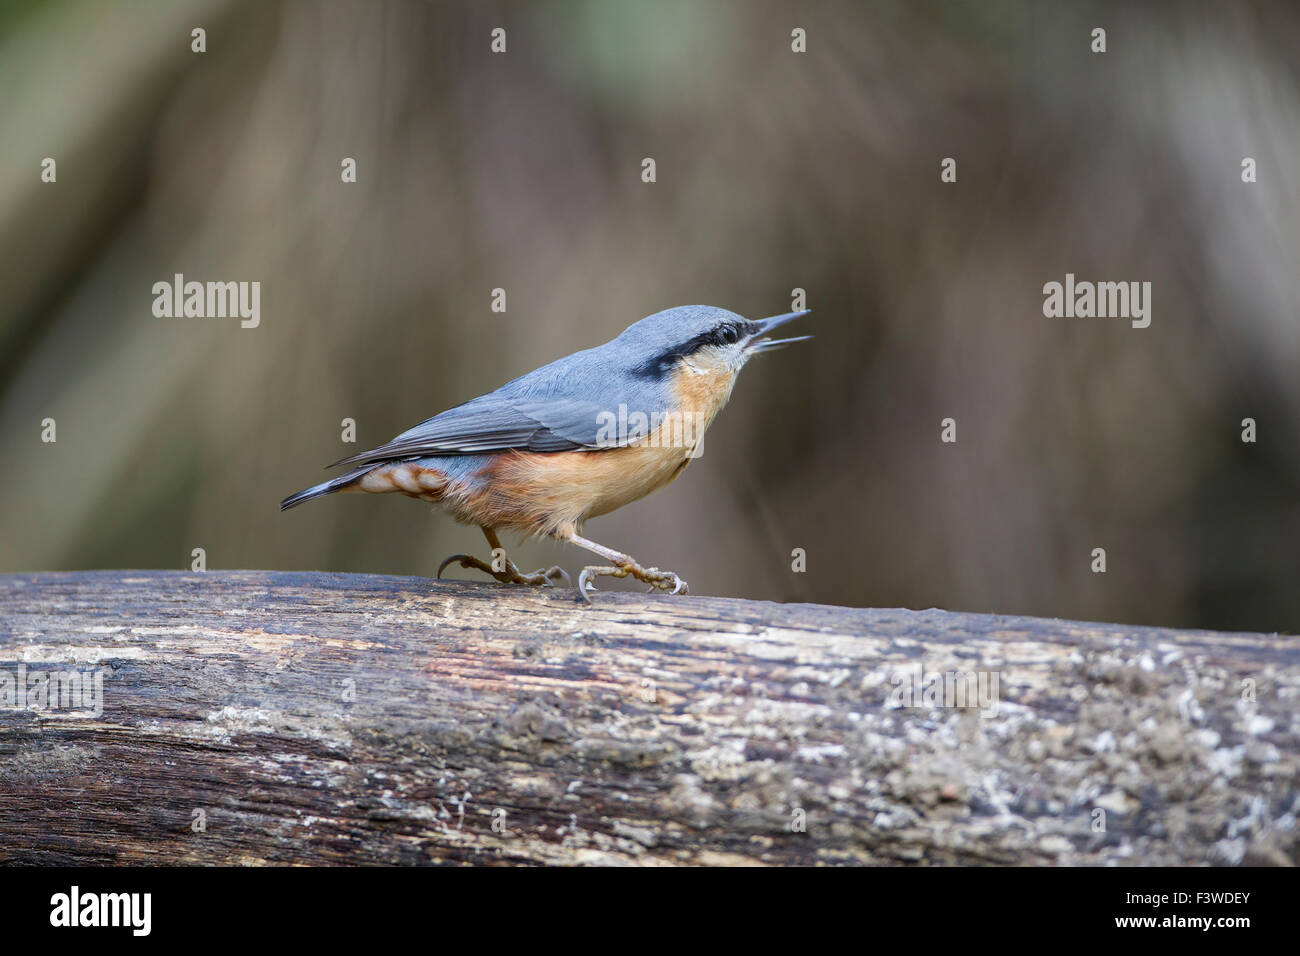 Nuthatch Sitta Europaea side view perched on a wooden branch with bill open - Stock Image